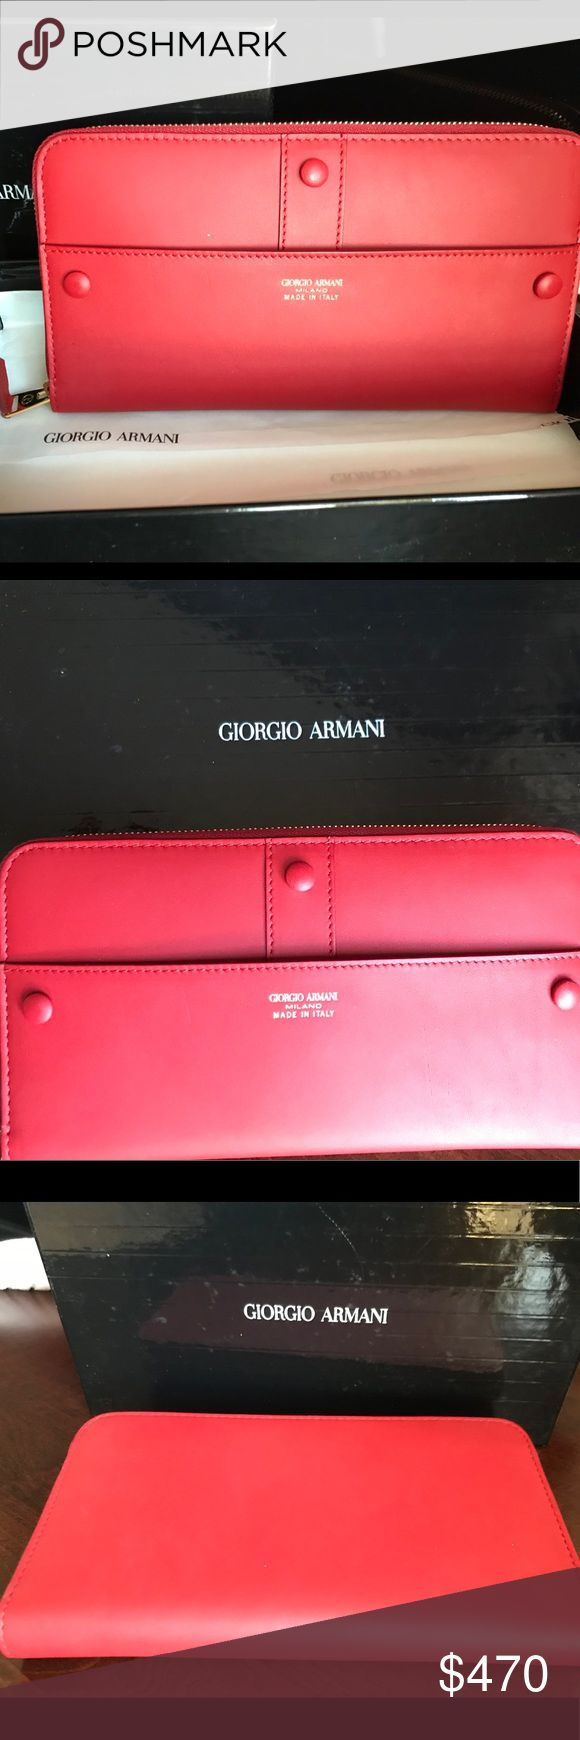 Authentic leather GIORGIO ARMANI accordion wallet. Authentic leather GiORGIO ARMANI  Accordion wallet Multifunctional 12credit cards slots 2 Full bill slots Middle Zip  NEW in Original Box  New with Tags  Retail:$675 giorgio armani Bags Wallets